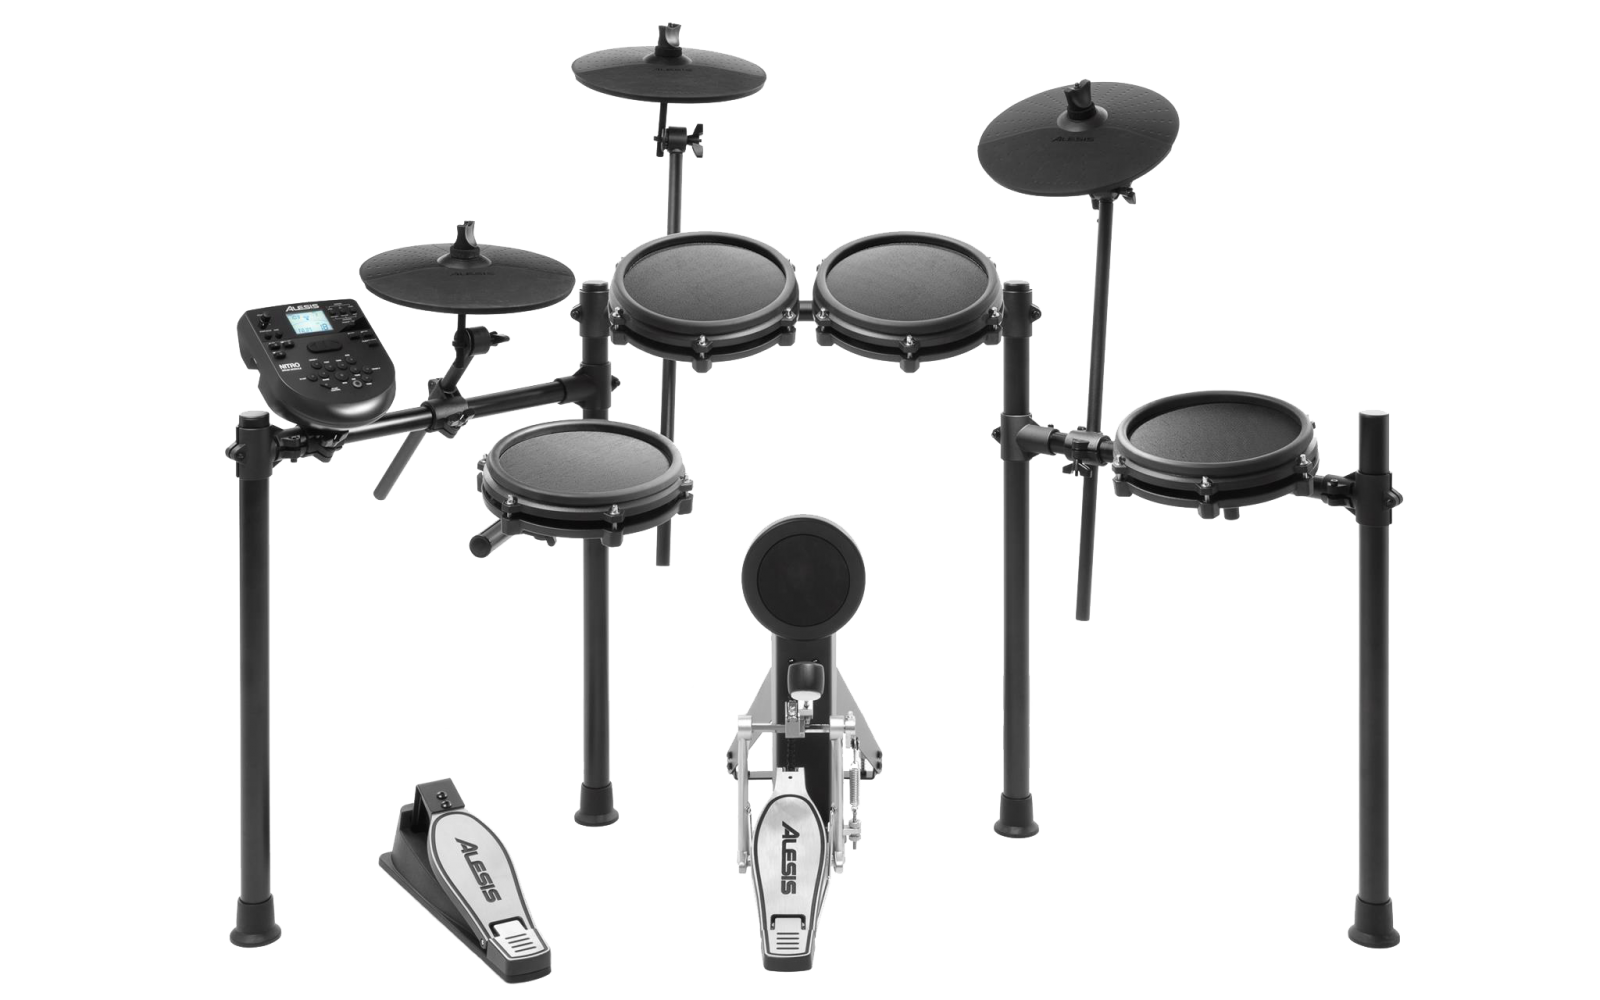 Alesis Nitro Mesh Kit - Frequently Asked Questions